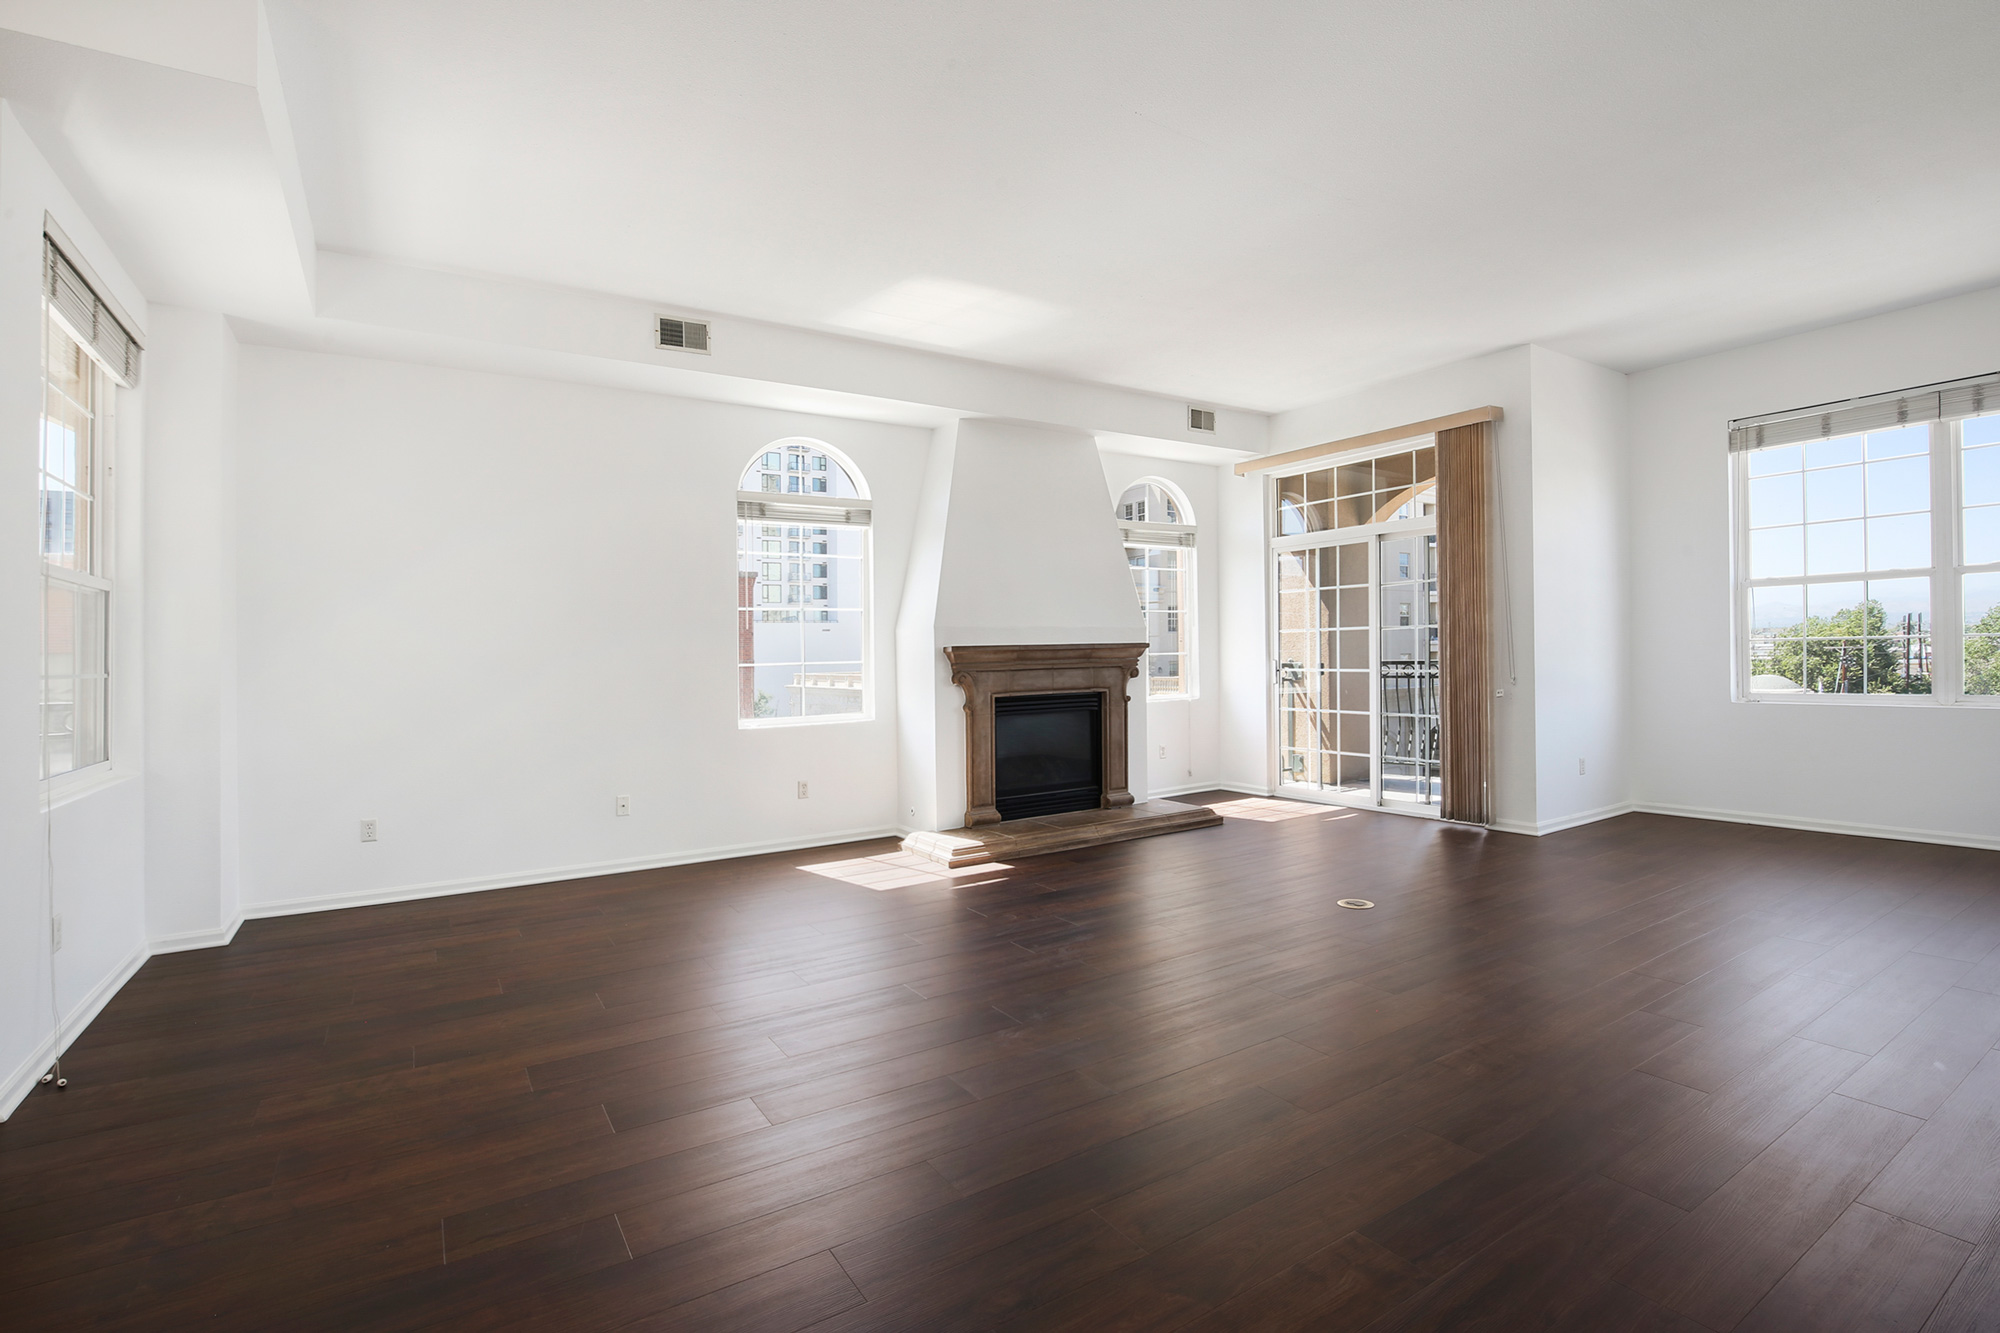 Condo for lease at Trieste in Golden Triangle